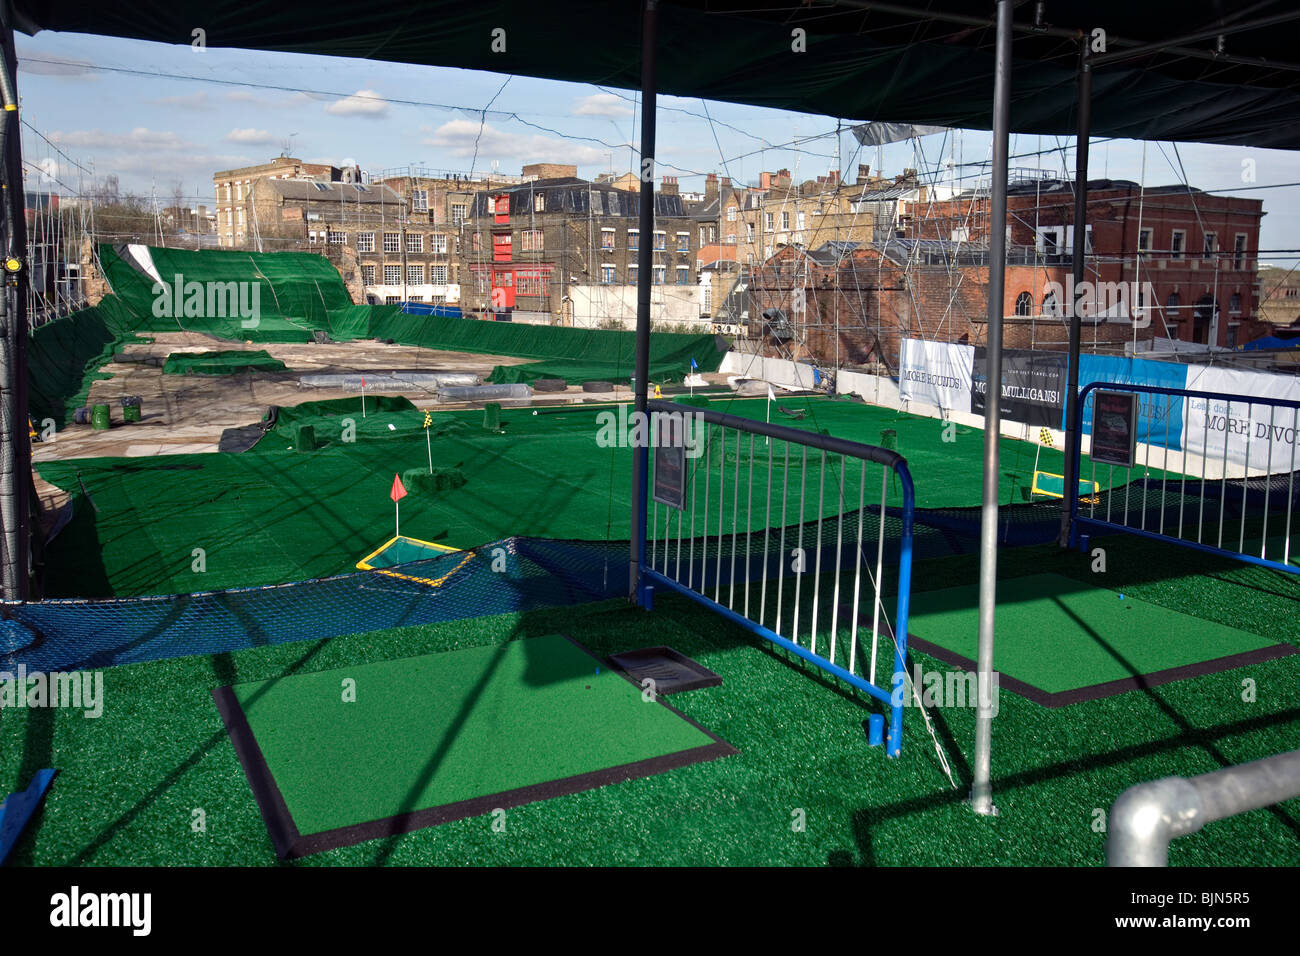 a new golf driving range in the city of london - Stock Image